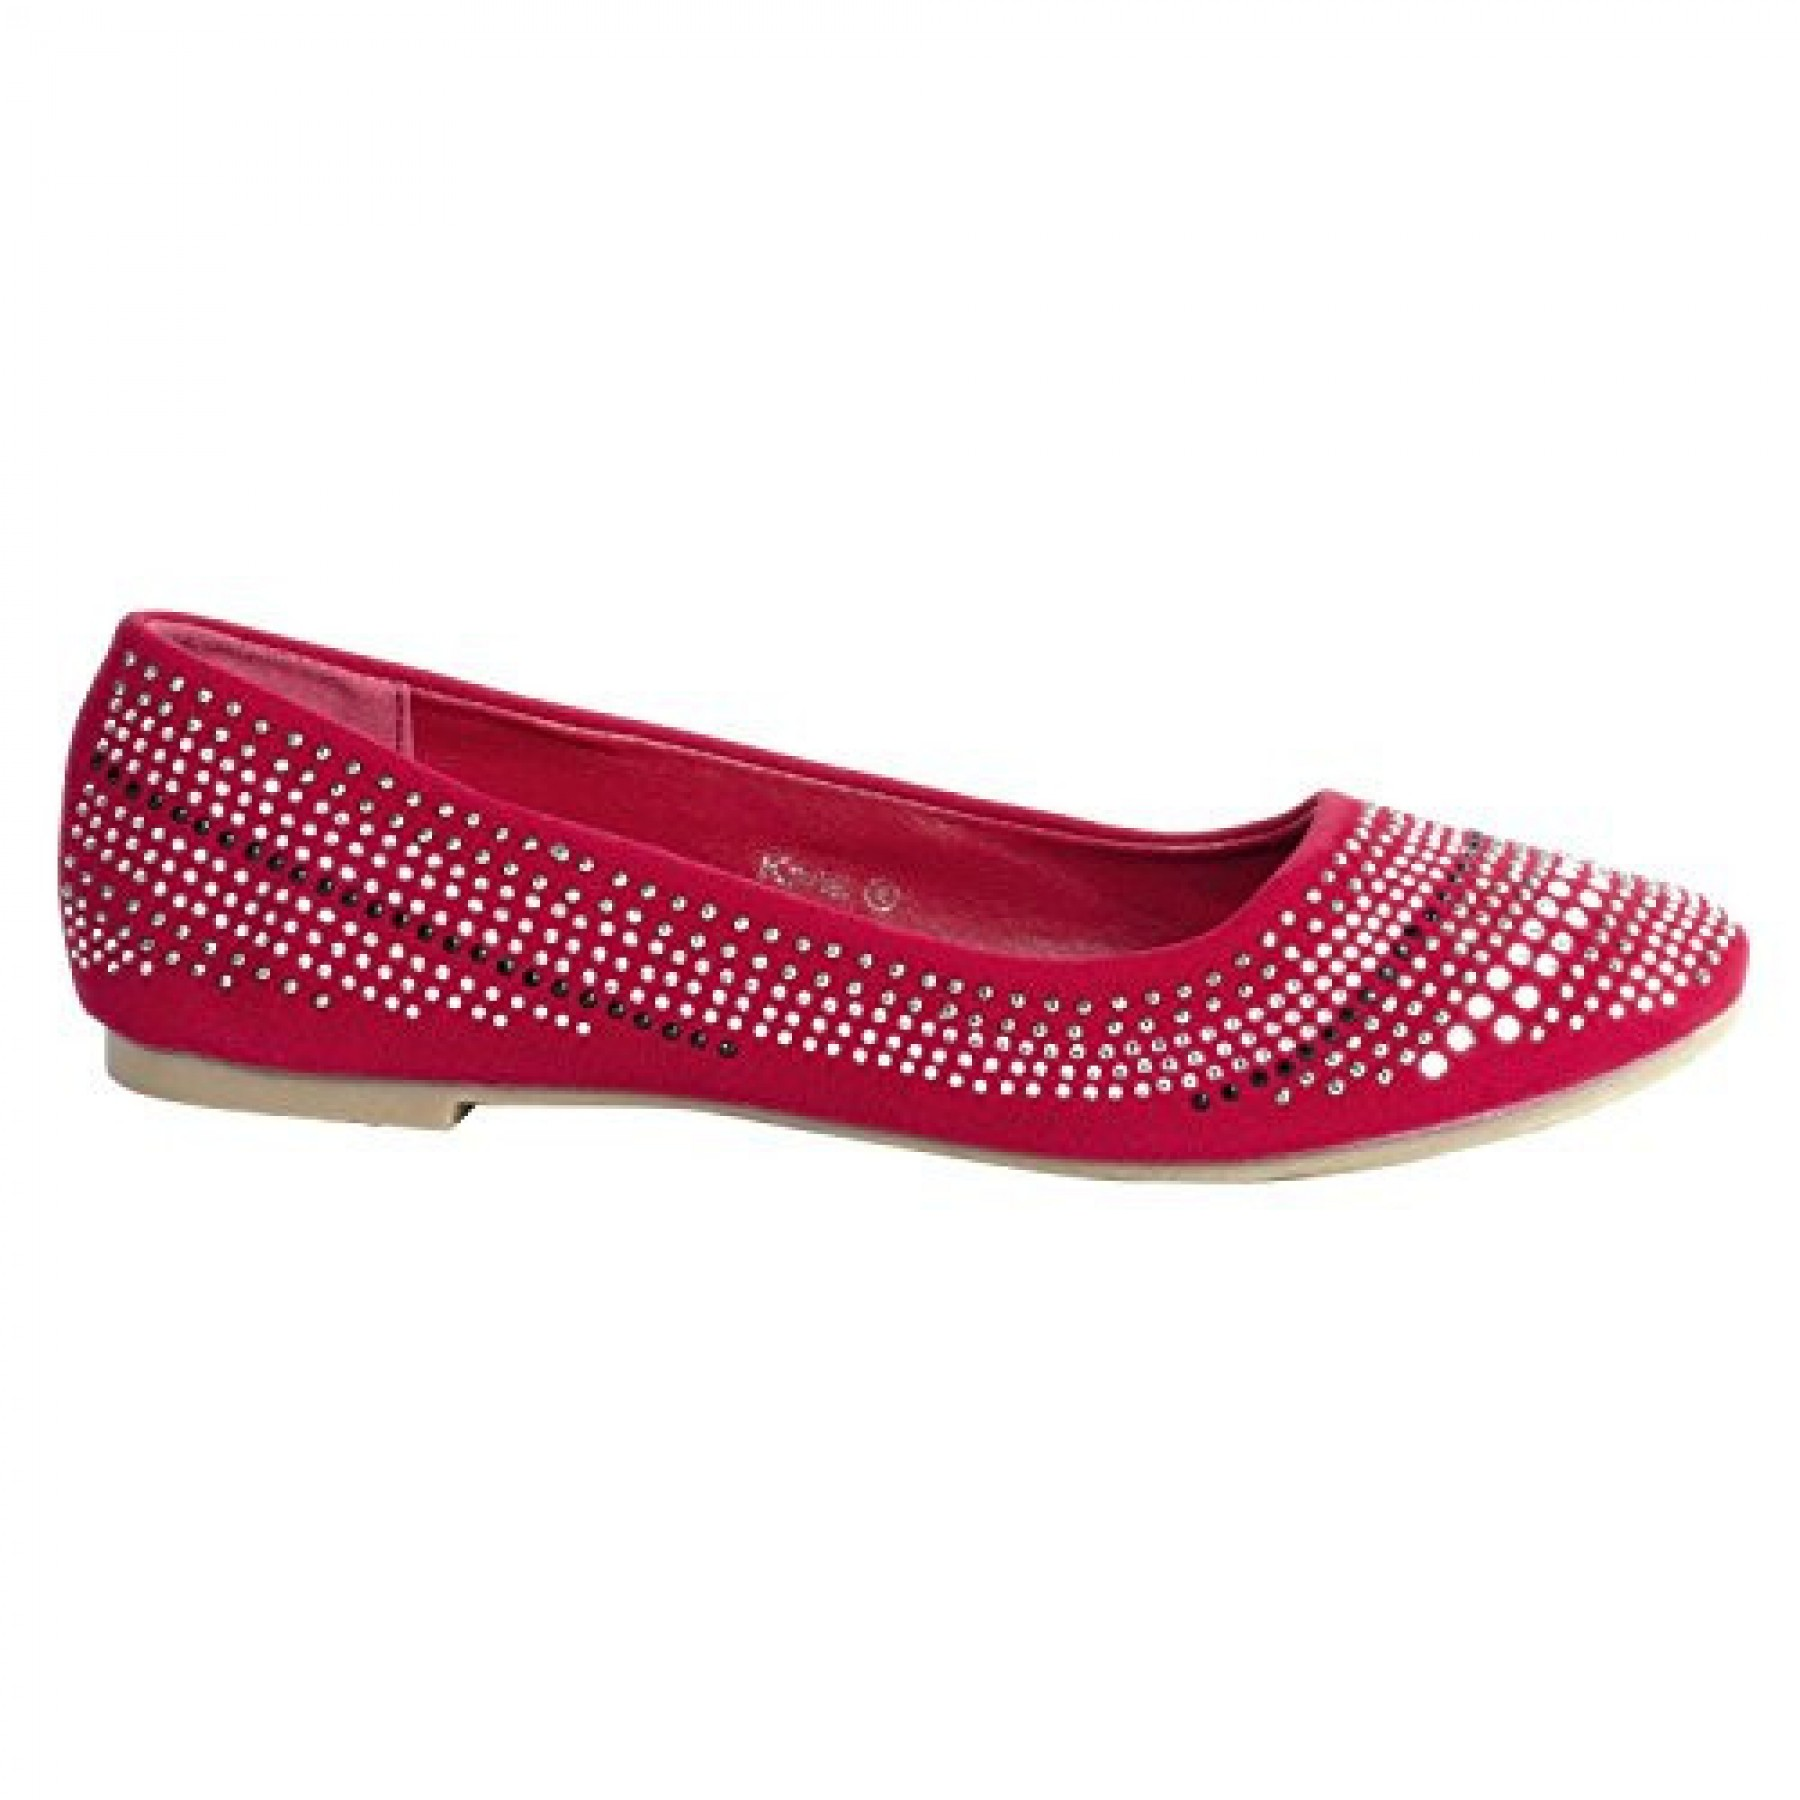 Women's Red Kana Manmade Chic Ballet Flat with Glittering Jewel Design